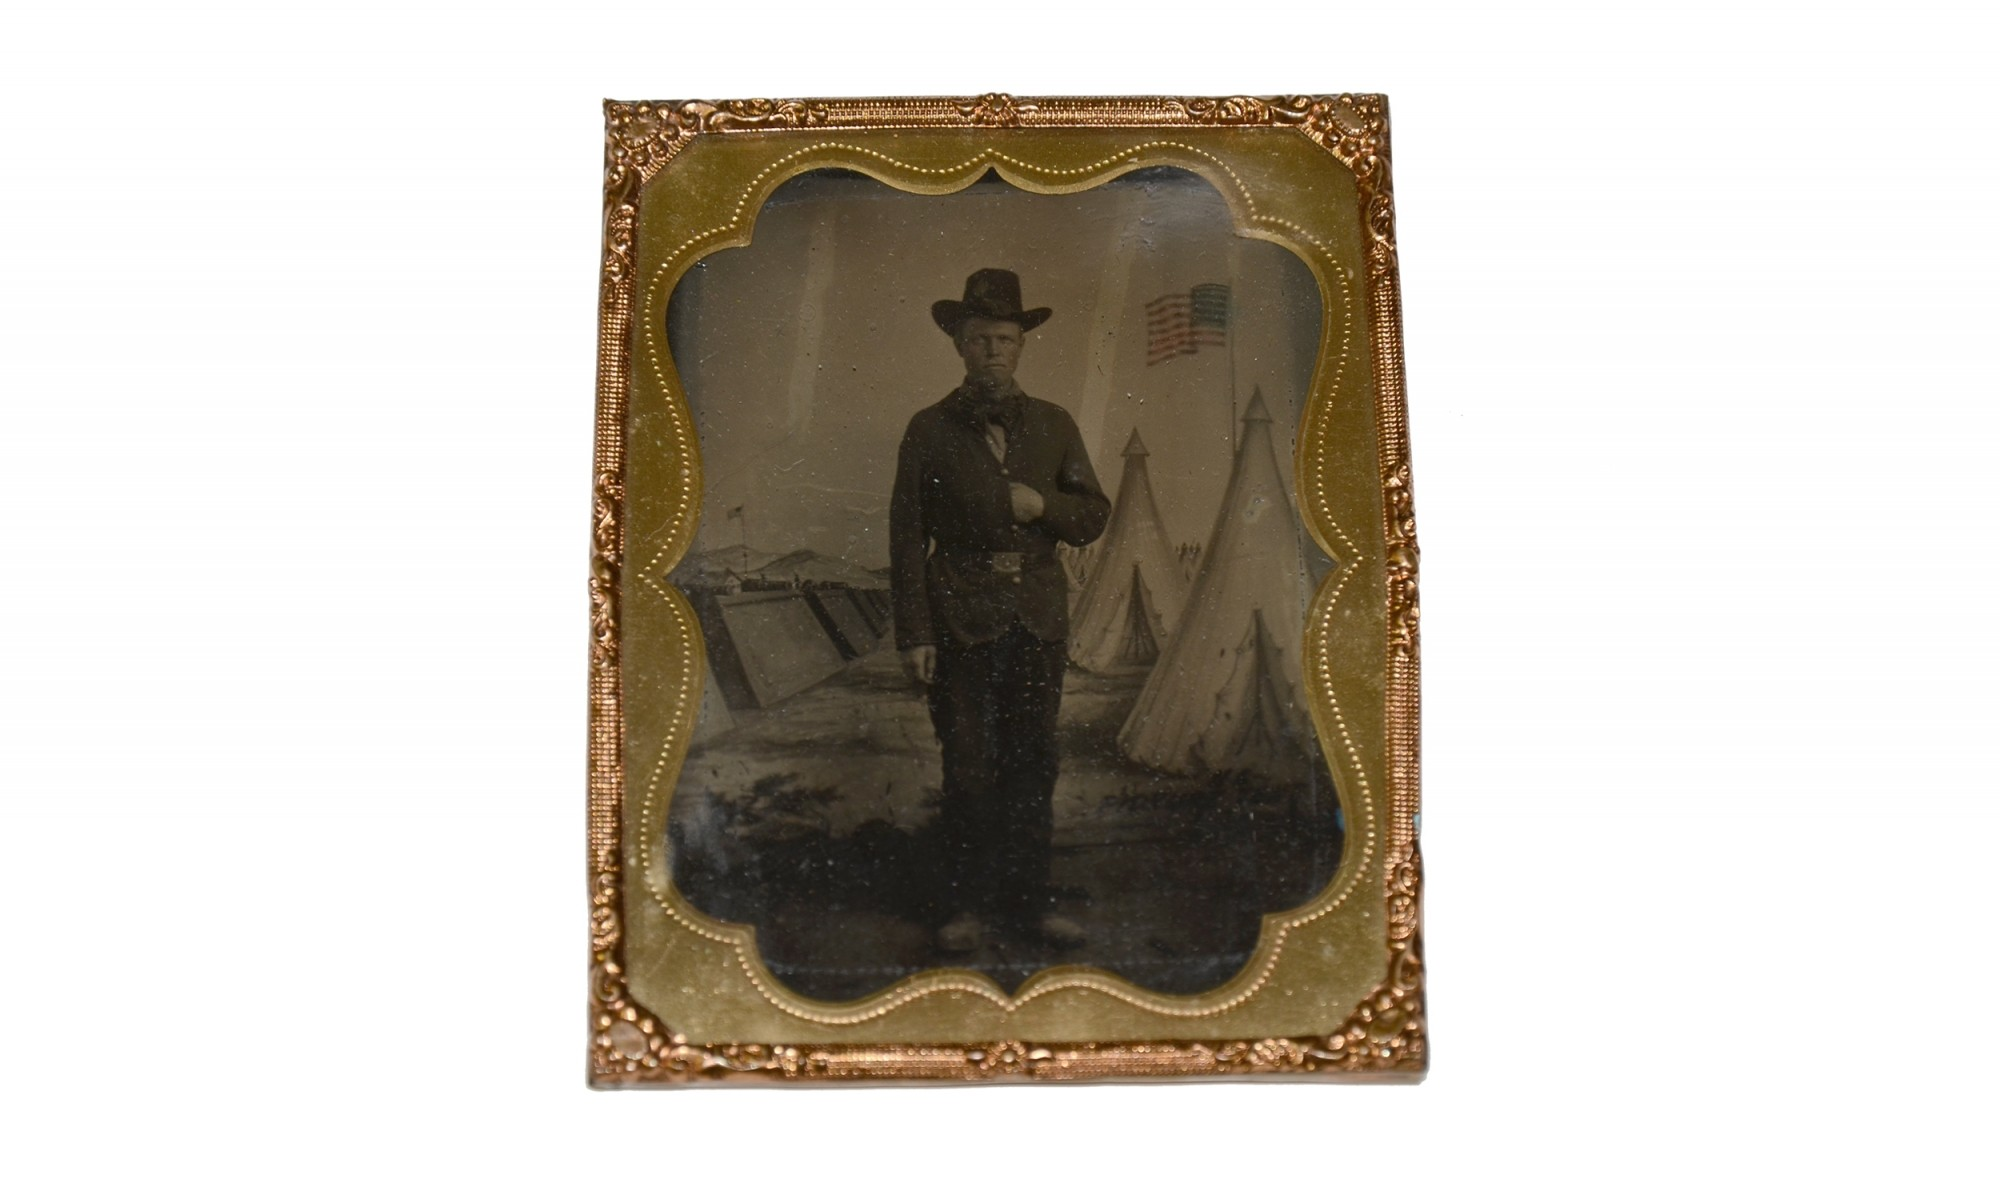 FULL STANDING QUARTER-PLATE TINTYPE OF BILLY YANK WITH PAINTED BACK DROP